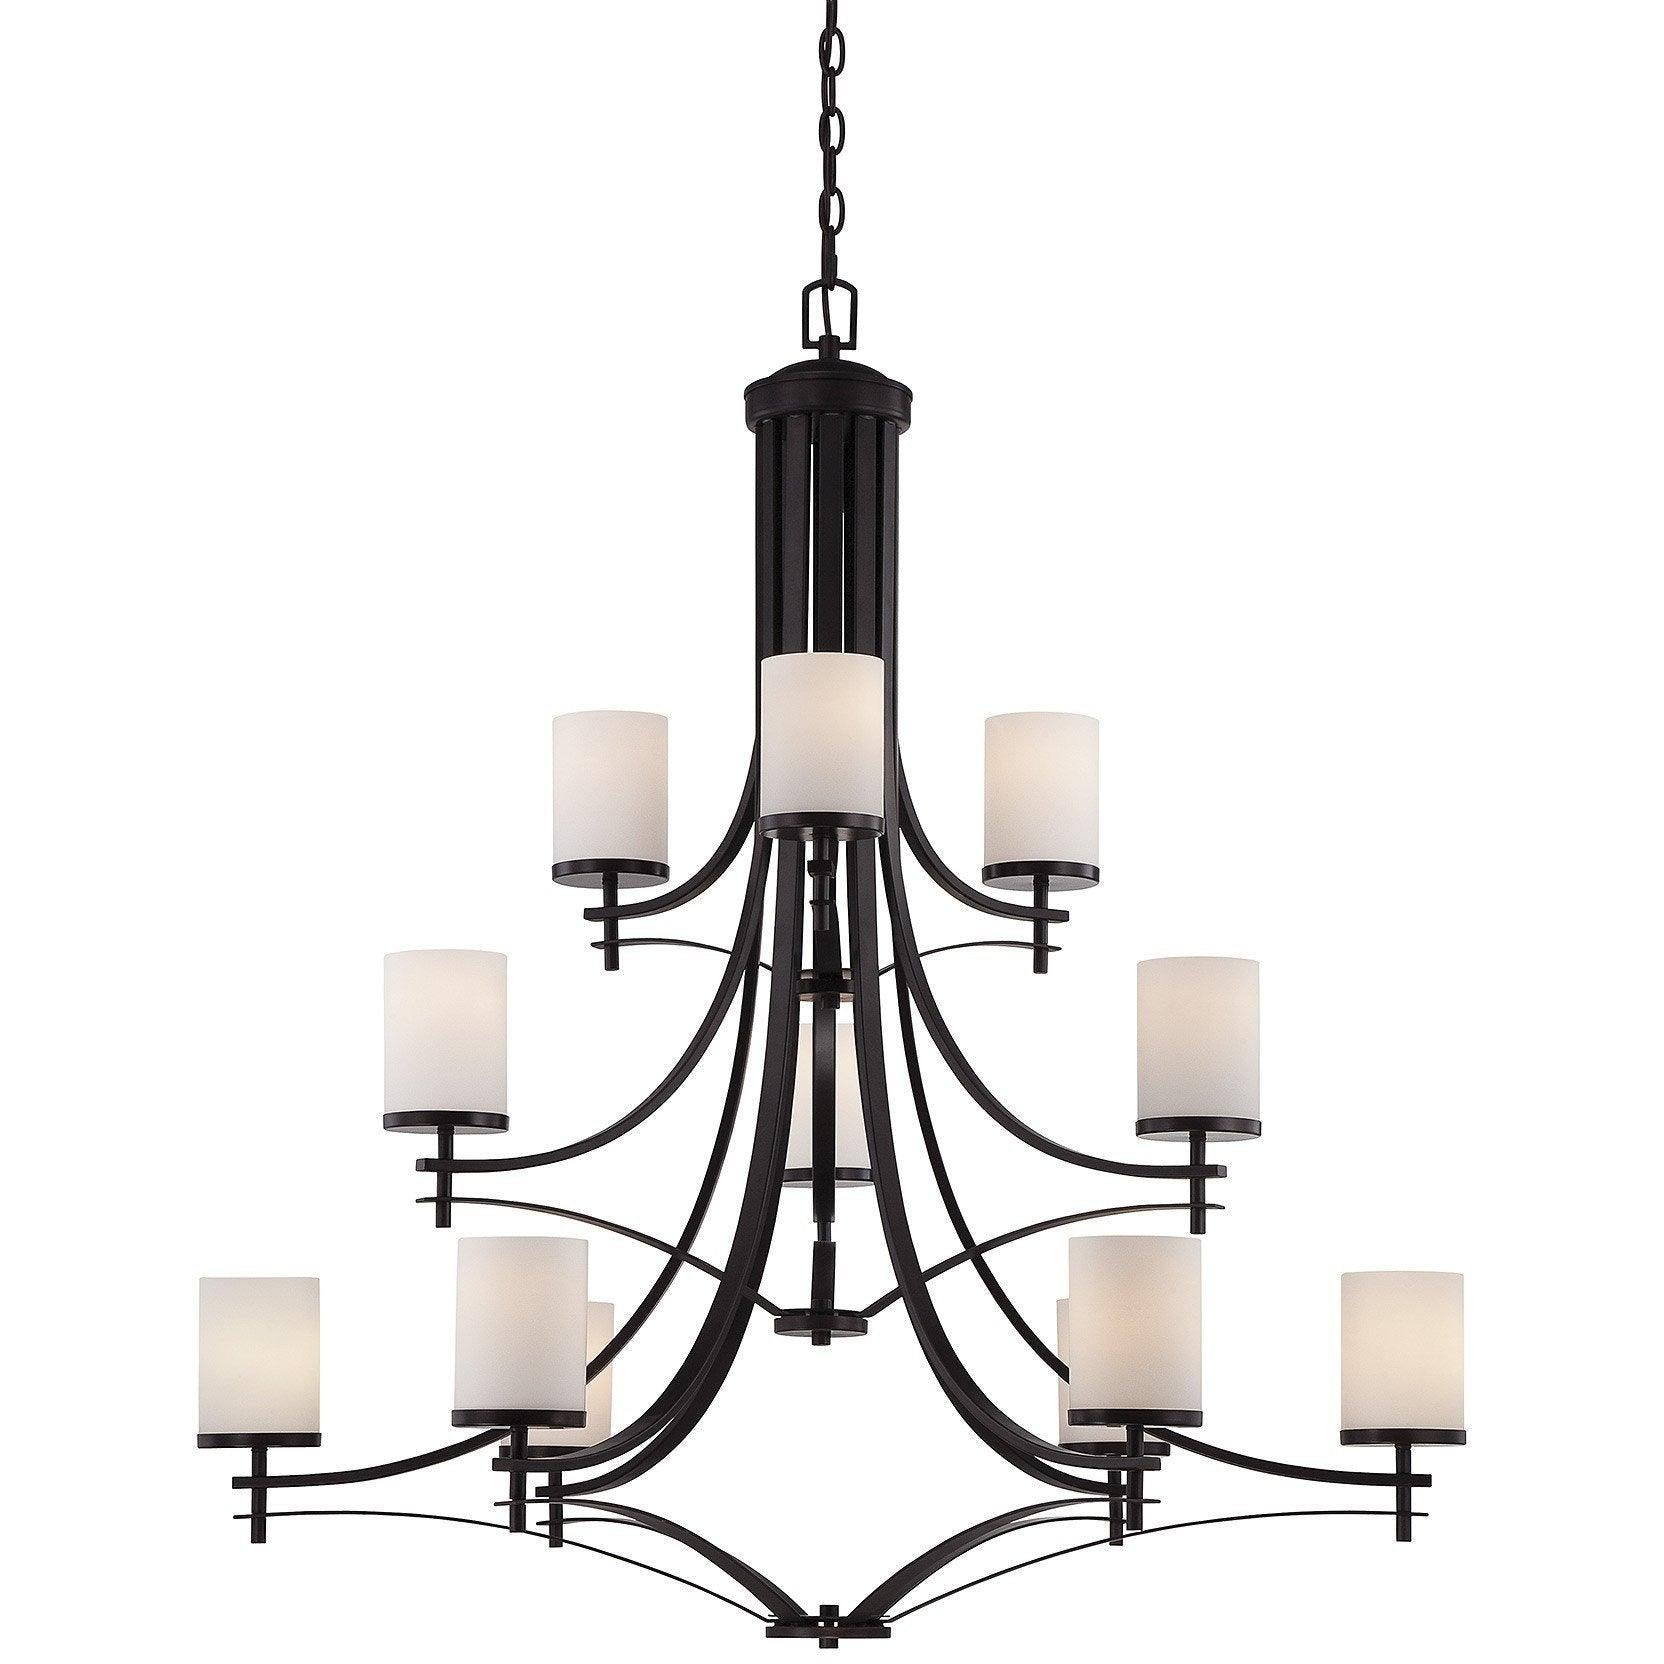 Savoy House - 1-332-12-13 - 12 Light Chandelier - Colton - English Bronze